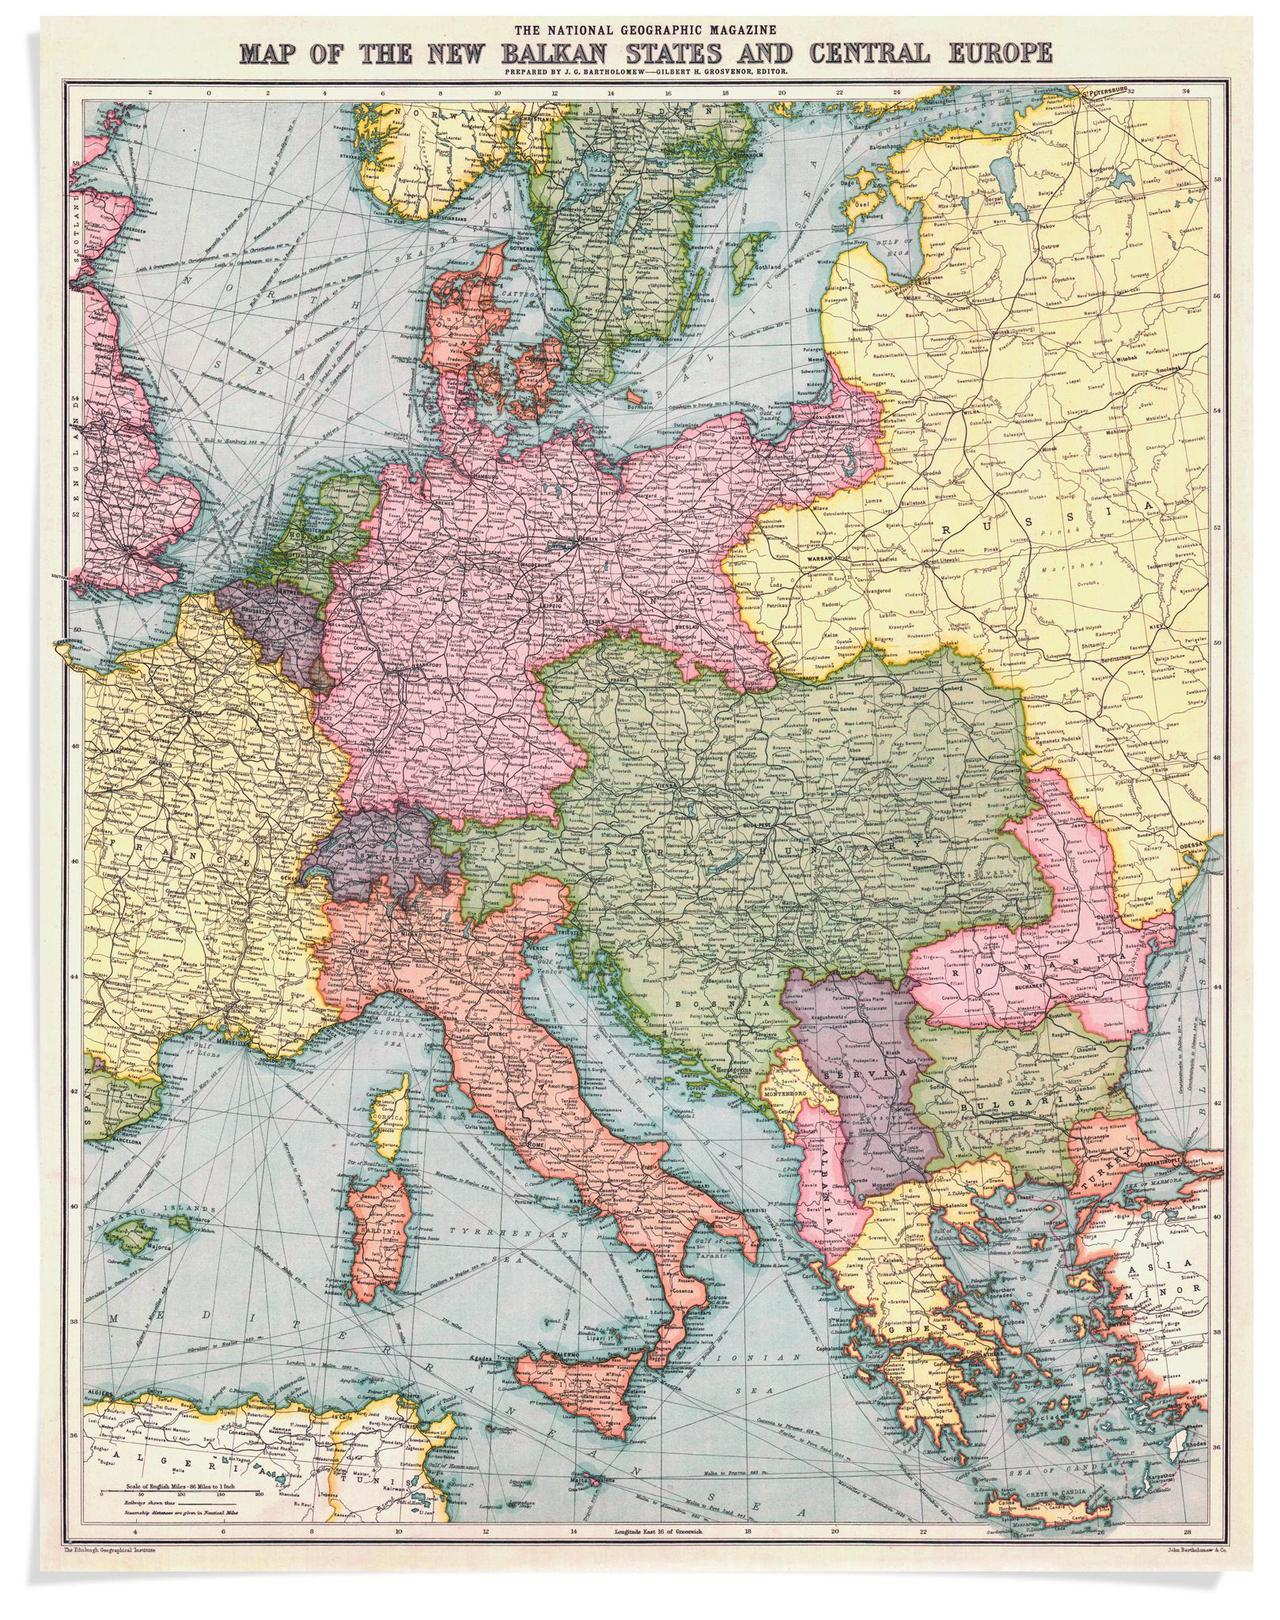 Map of the New Balkan States and Central Europe, National Geographic Society, 1914.